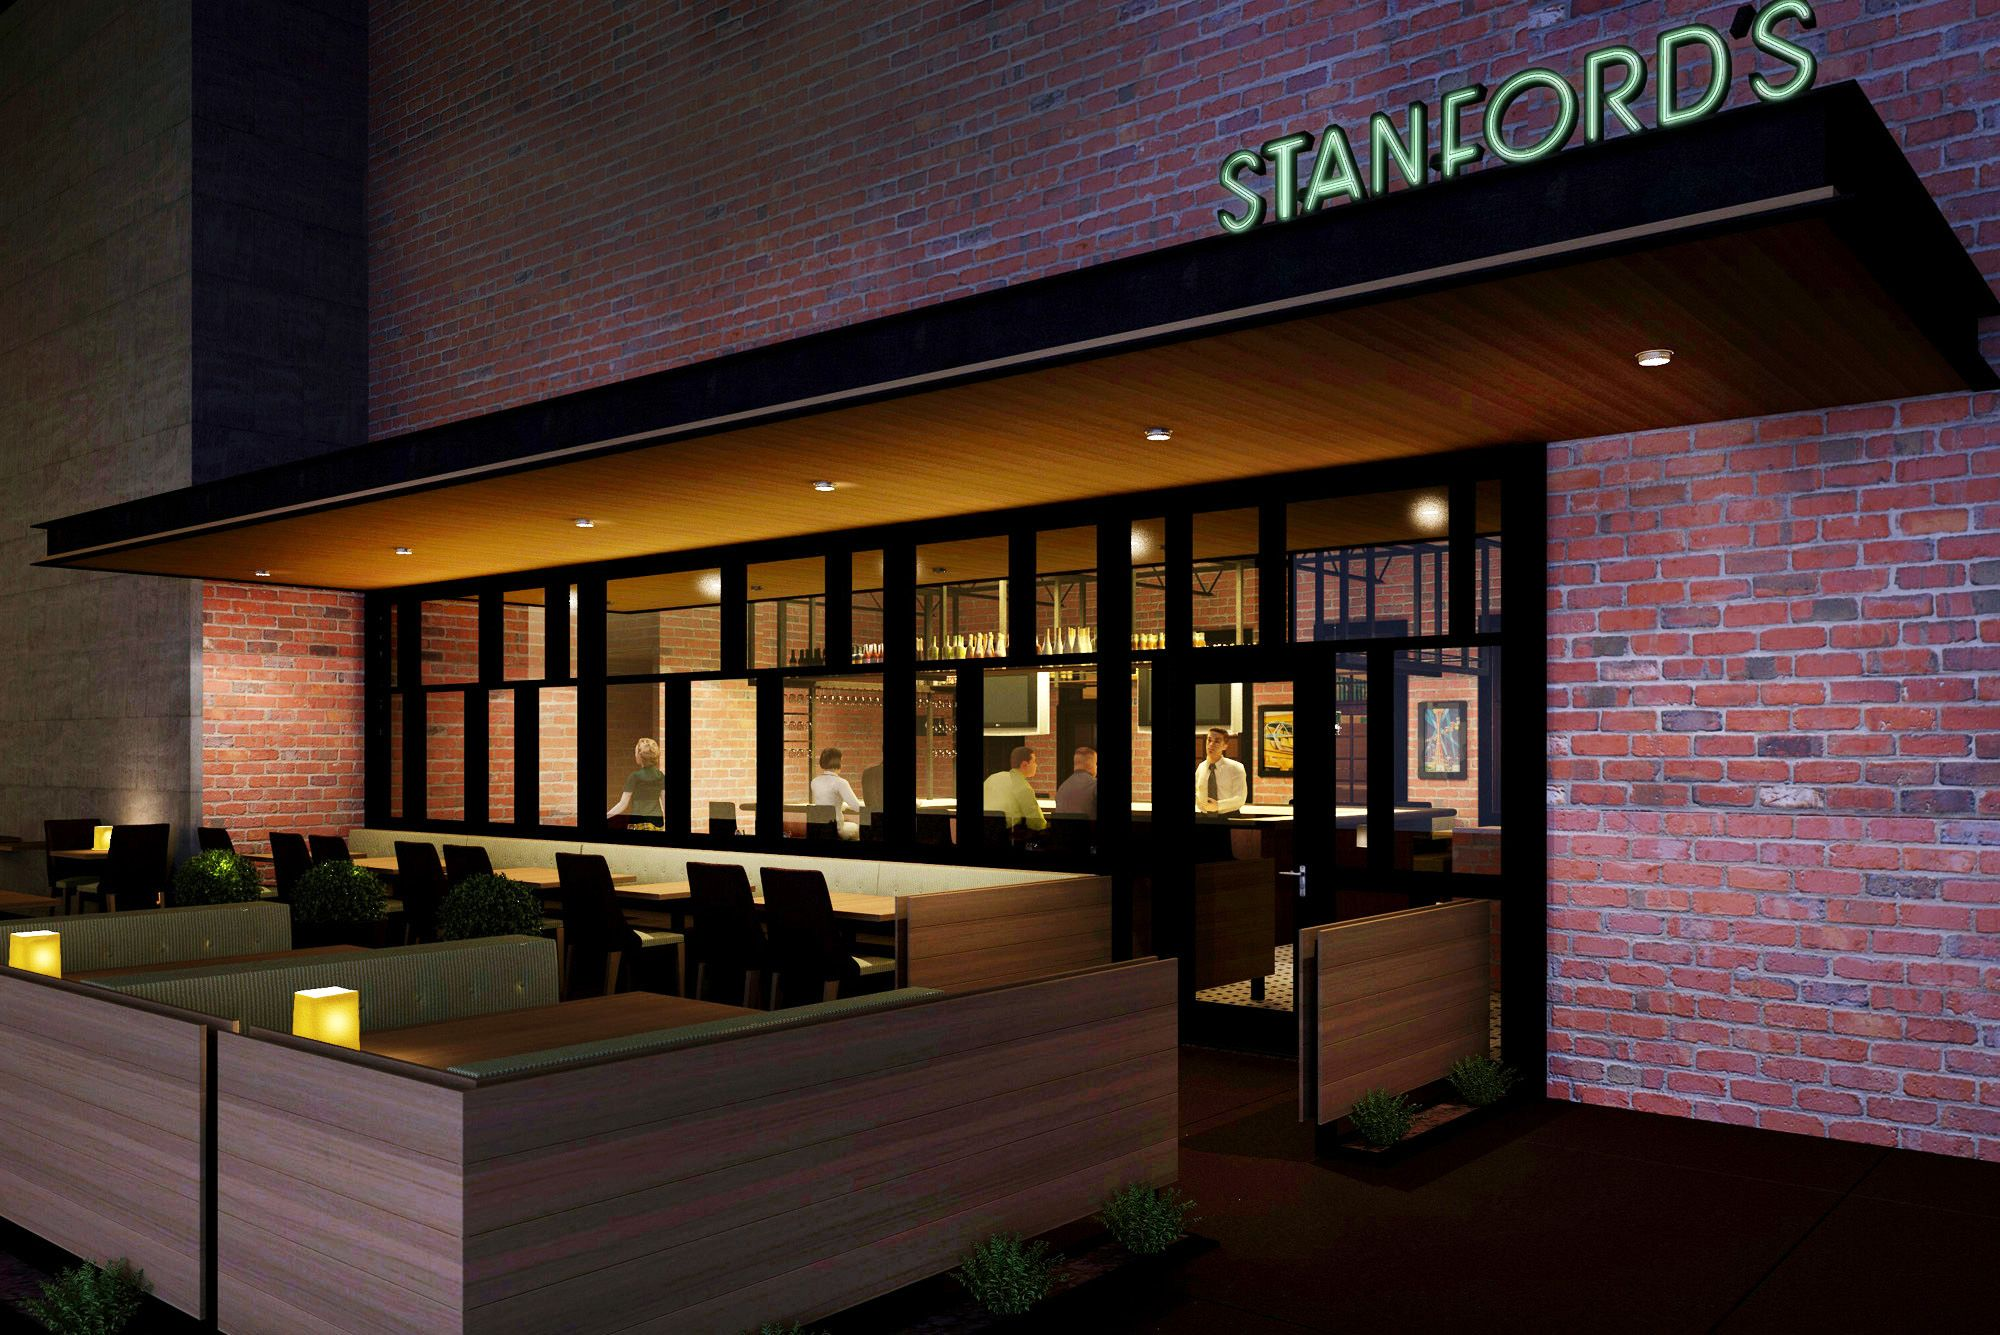 cool restaurant exteriors - Google Search                                                                                                                                                     More